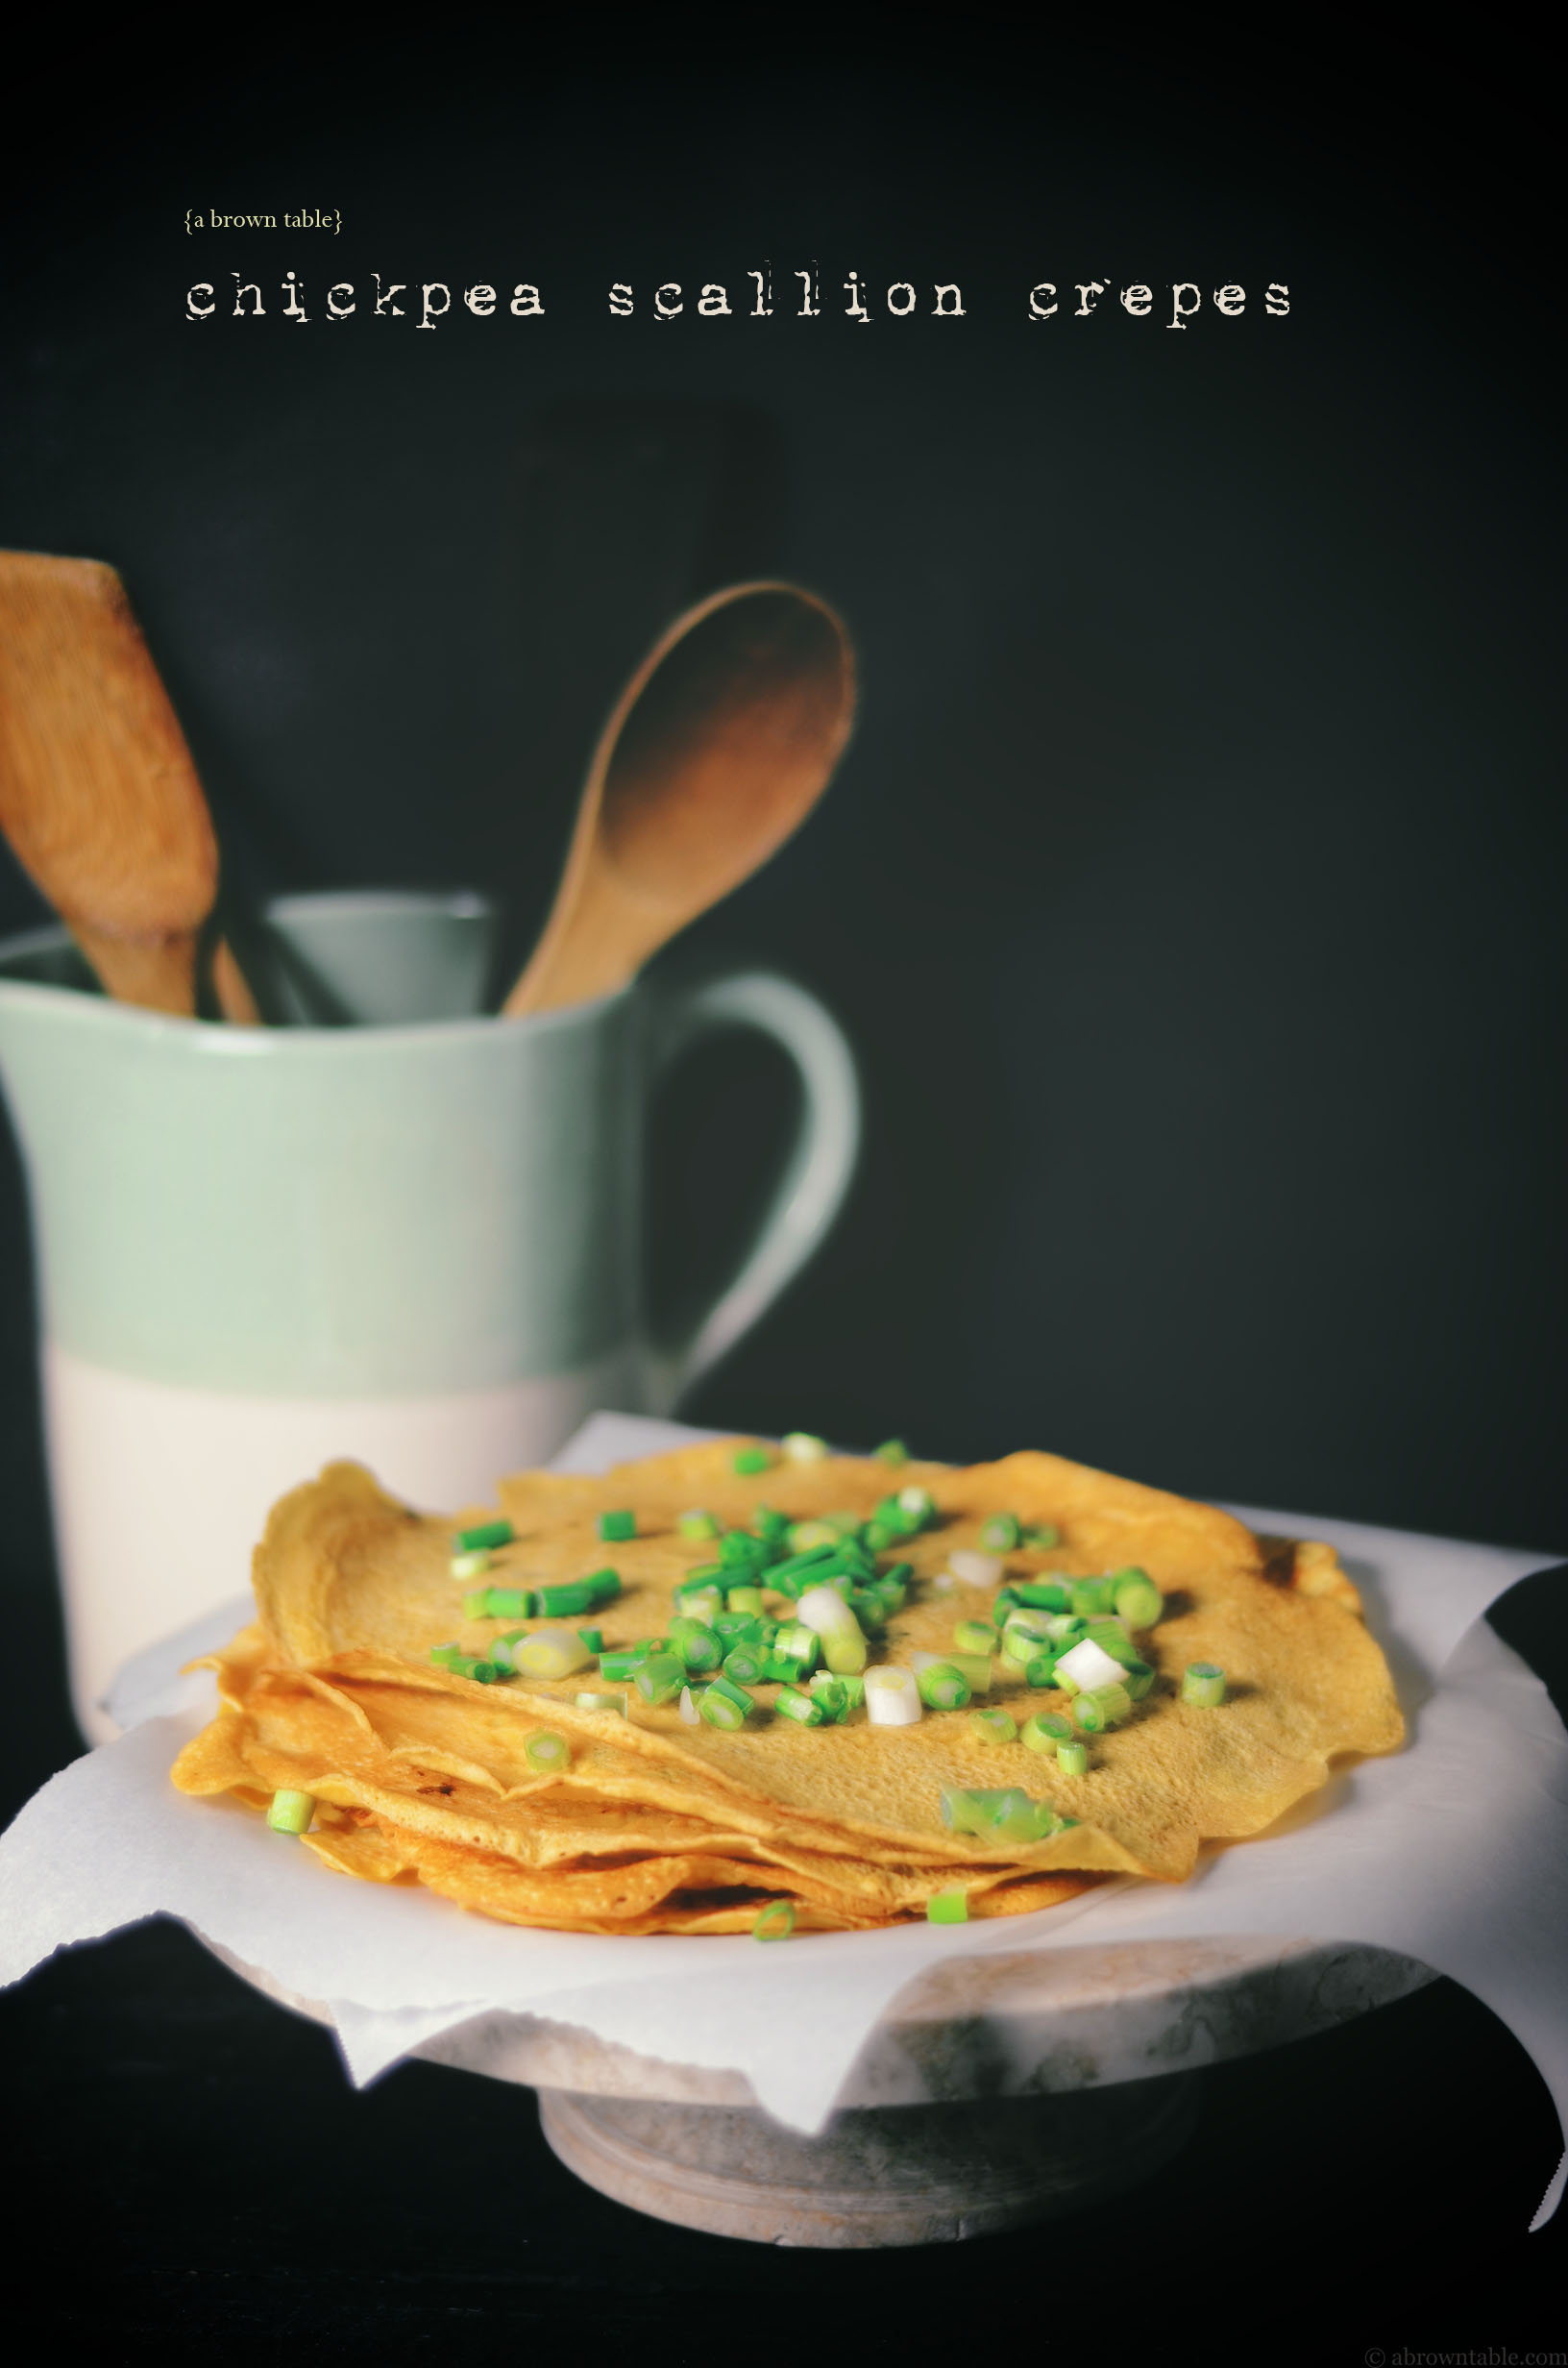 spicy chickpea scallion crepes